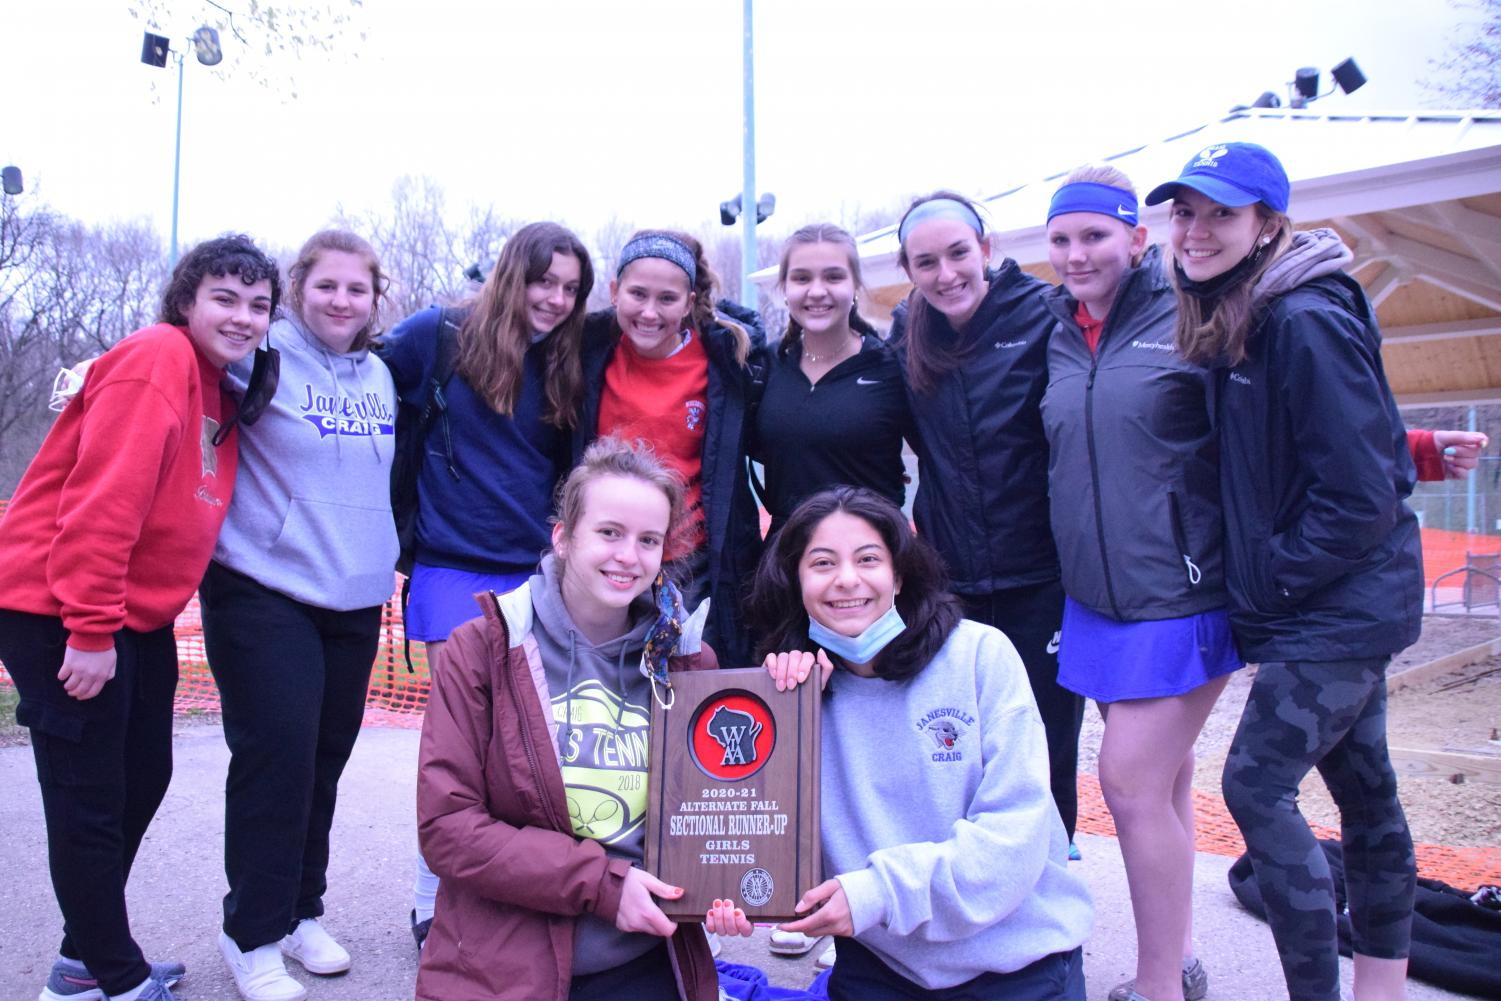 Craigs sectional team poses with their runner-up trophy on Wednesday, April 14, at Palmer Park. From left to right: In the front row (holding the plaque) are Lucia Hyzer and Myrka Ceballos. In the back row are Bridget Reilly, Hattie Plenty, Karyssa Norland, Becca Frank, Ellah Turenne, Allison Grund, Addison Kooyman, and Madison Burrow.